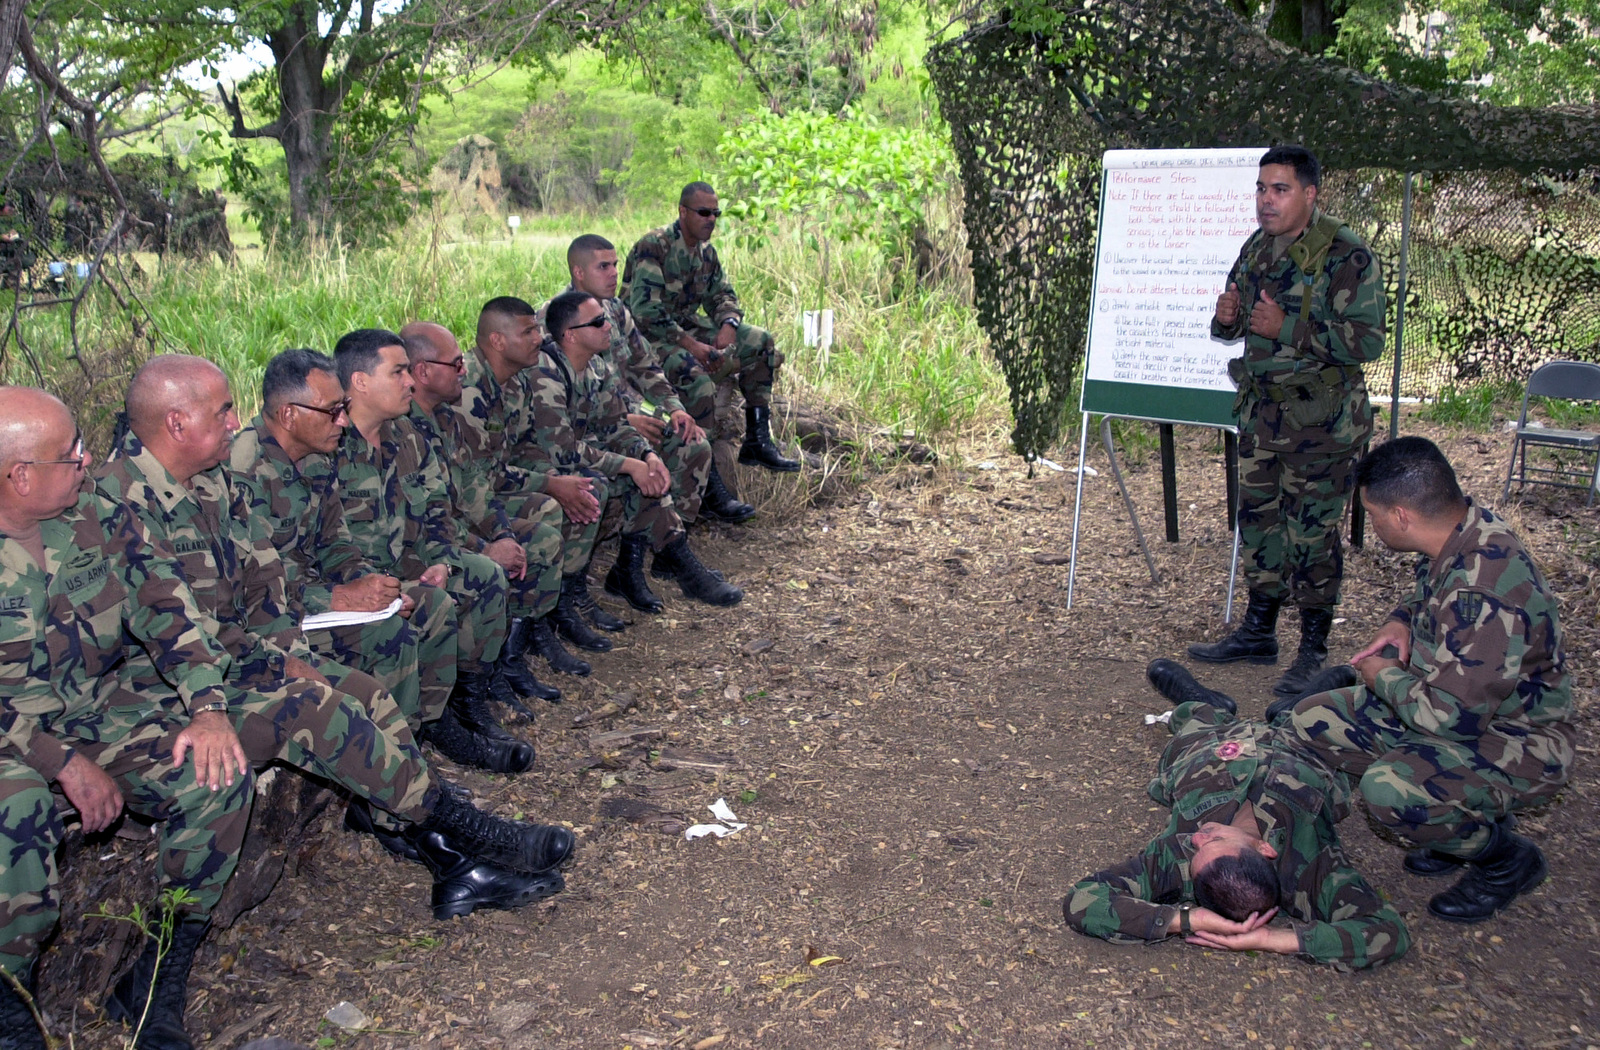 US Army (USA) Sergeant First Class (SFC) Ivan Torres (standing right), Observer/Controller from the 2nd Battalion, 348th Infantry Regiment, 174th Infantry Brigade, 87th Division, conduct a first aid training course with Puerto Rico National Guard Soldiers, from the 755th Military Police (MP) Company, 125th MP Battalion, 101st Troop Command, while conducting Common Task Training (CTT), at the Camp Santiago Training Site (CSTS), located in Salinas, Puerto Rico (PR)